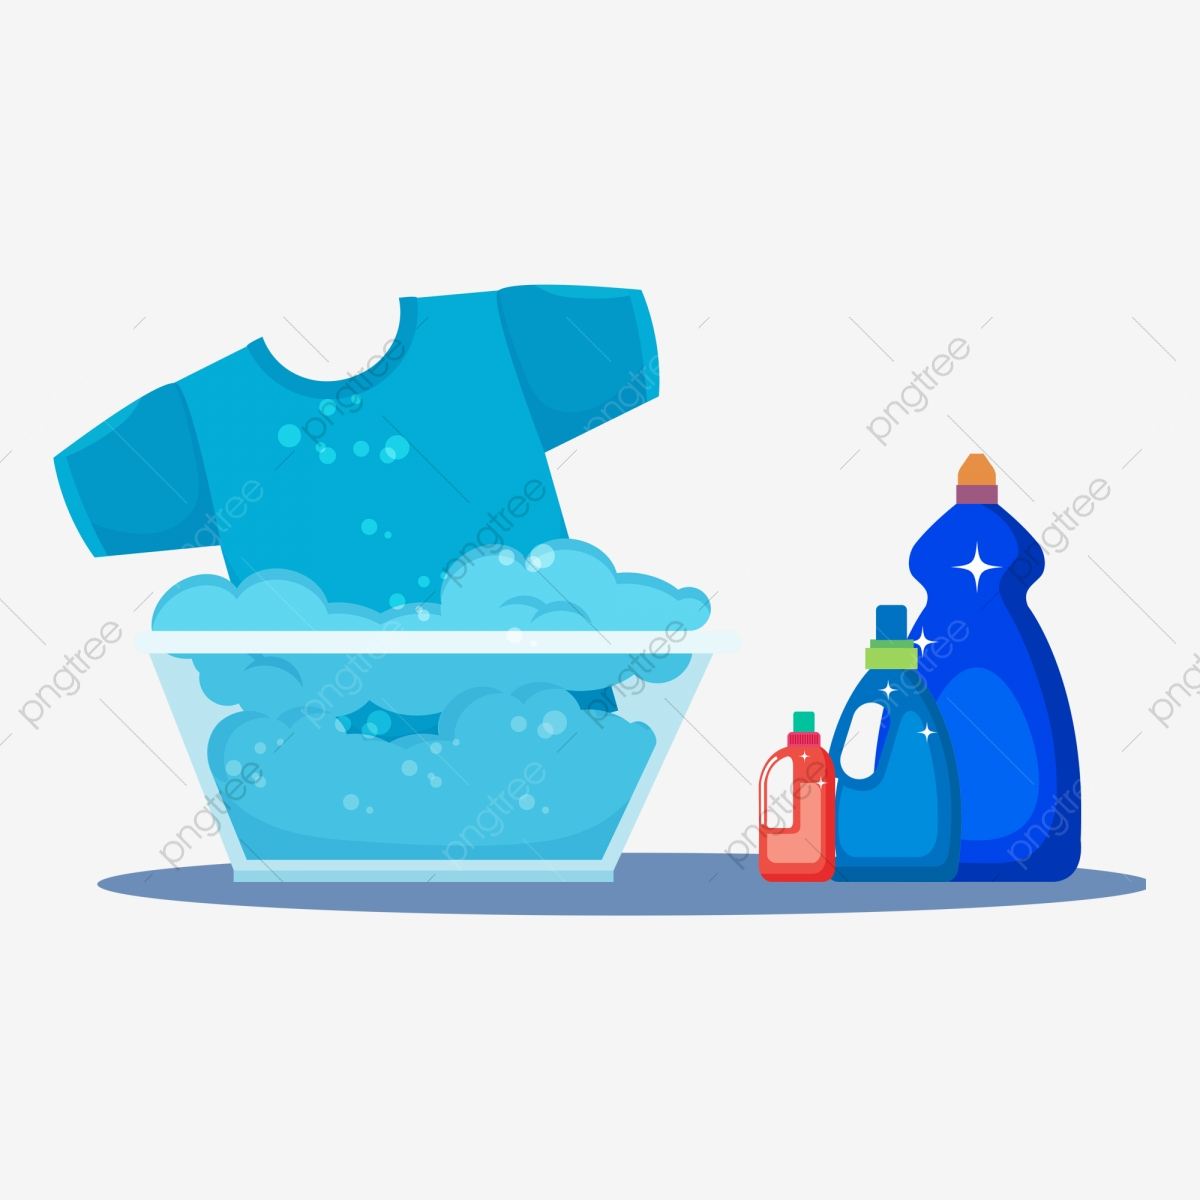 Supplies cleaning product washing. Brush clipart laundry